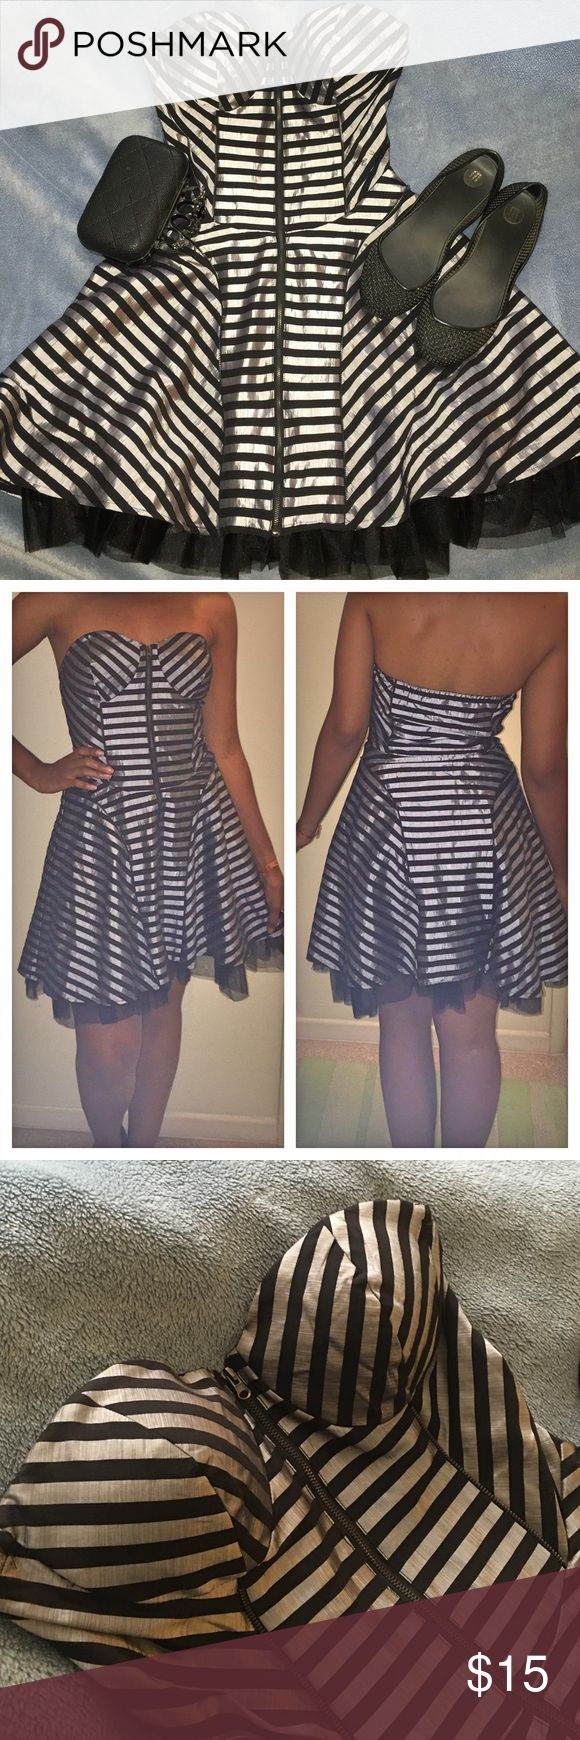 Cute striped dress ❤️ Perfect condition! It was worn just a few times! Great with flats or heels! The color is a metallic silver with black and has a frontal zip. Forever 21 Dresses Mini